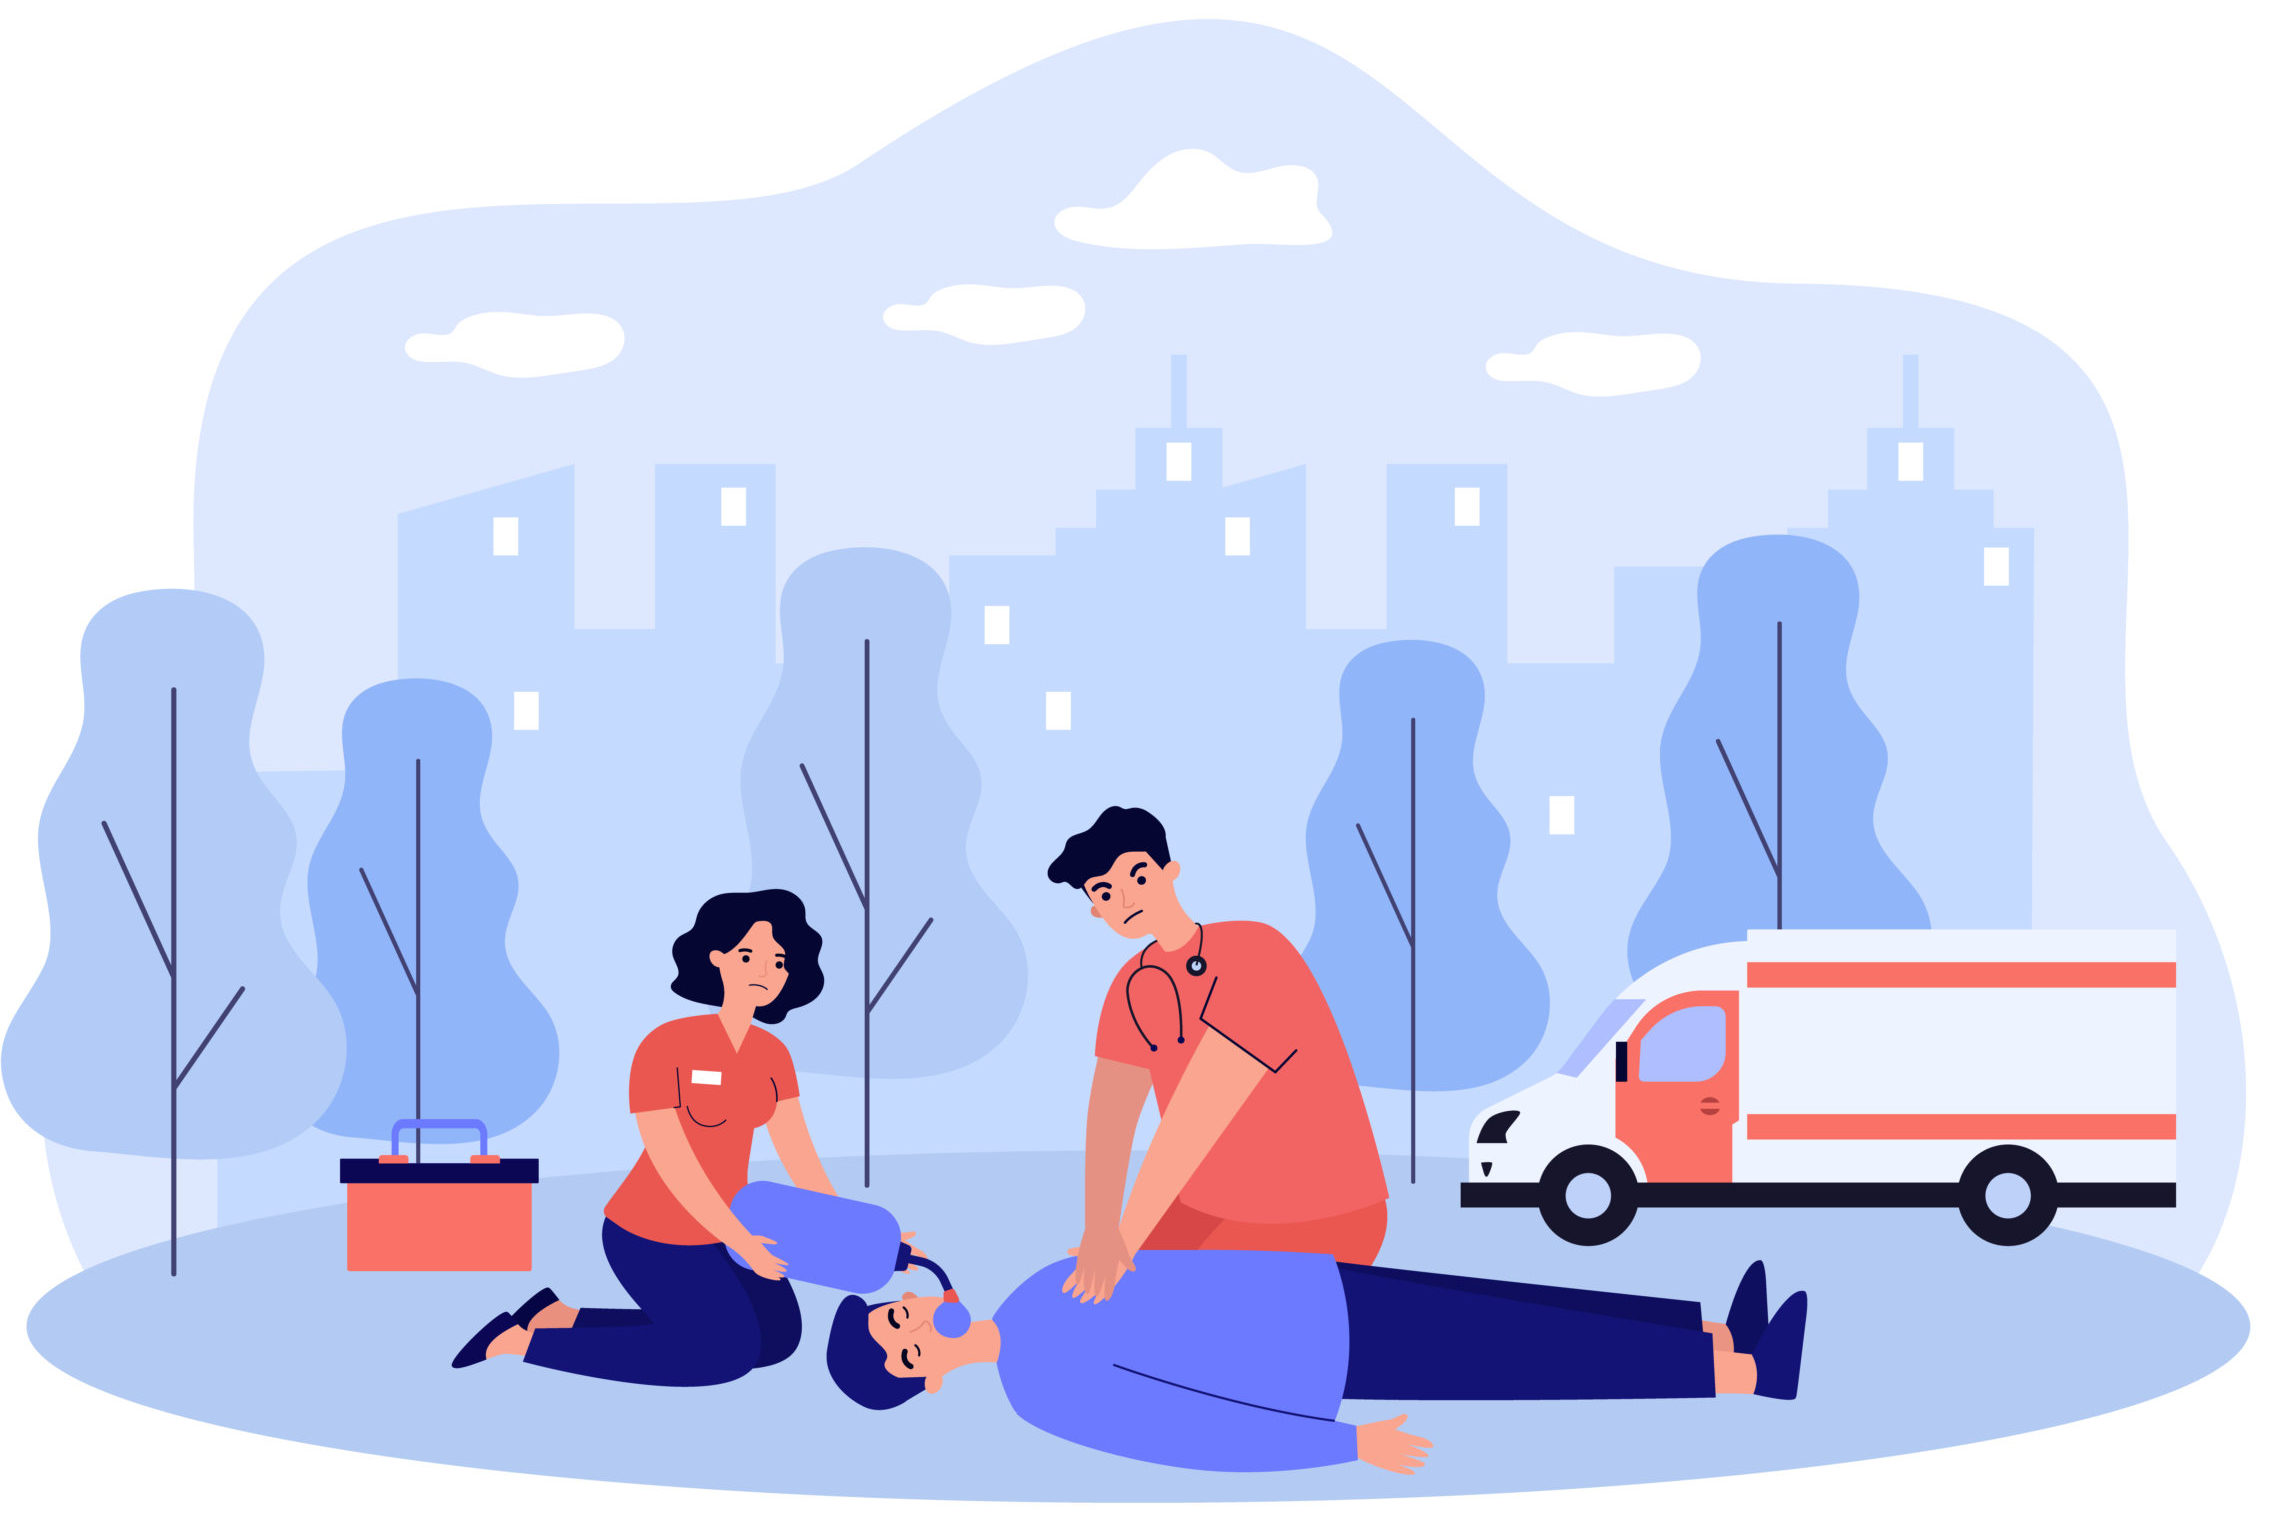 Paramedics resuscitating unconscious person. Doctor and assistant applying cardiopulmonary resuscitation to lying outside. Vector illustration for emergency, accident, first aid training concept